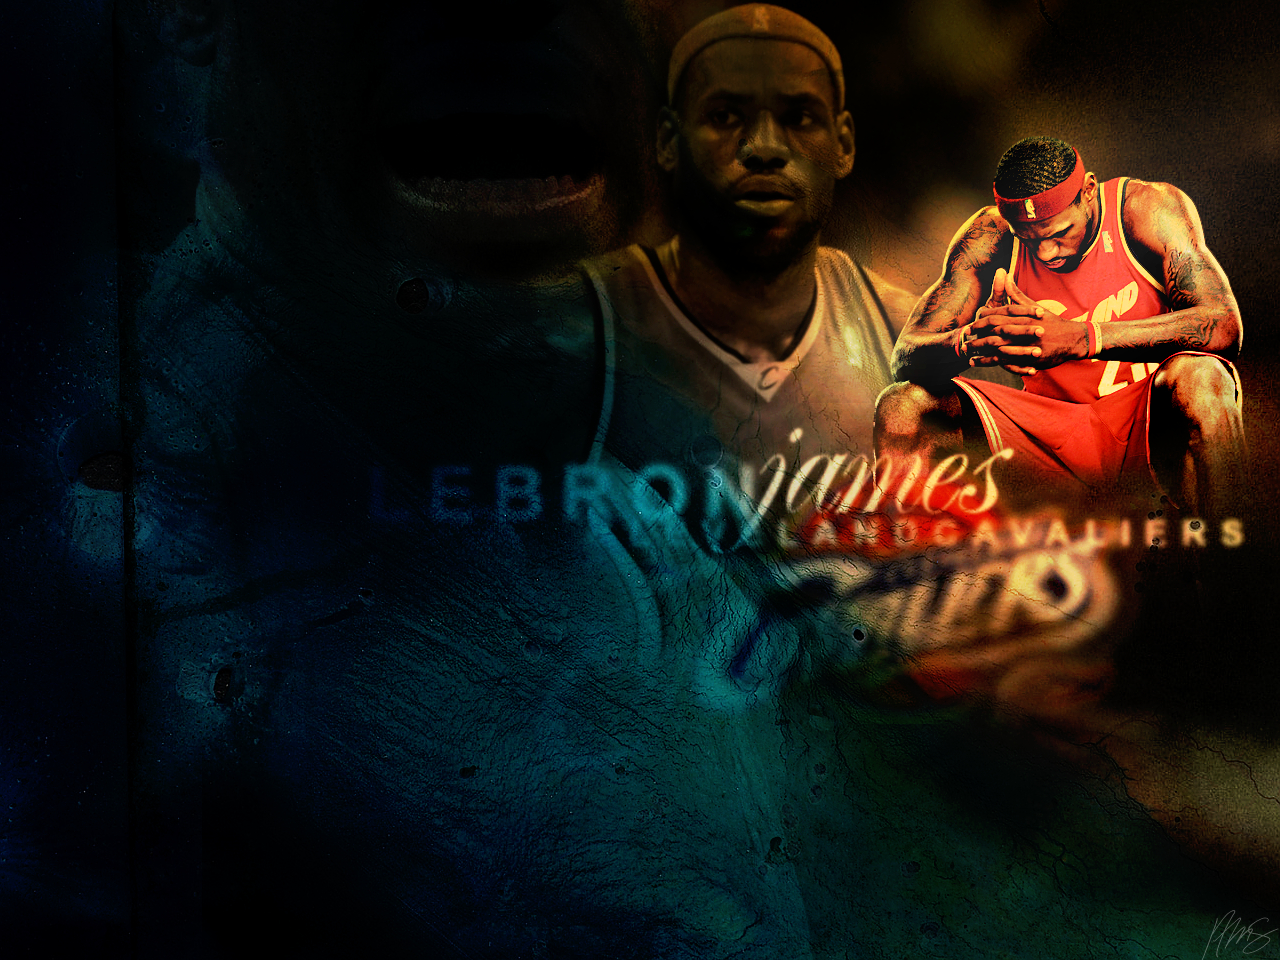 wallpaper other 2009 2015 witnessgfx lebron james wallpaper stocks and 1280x960